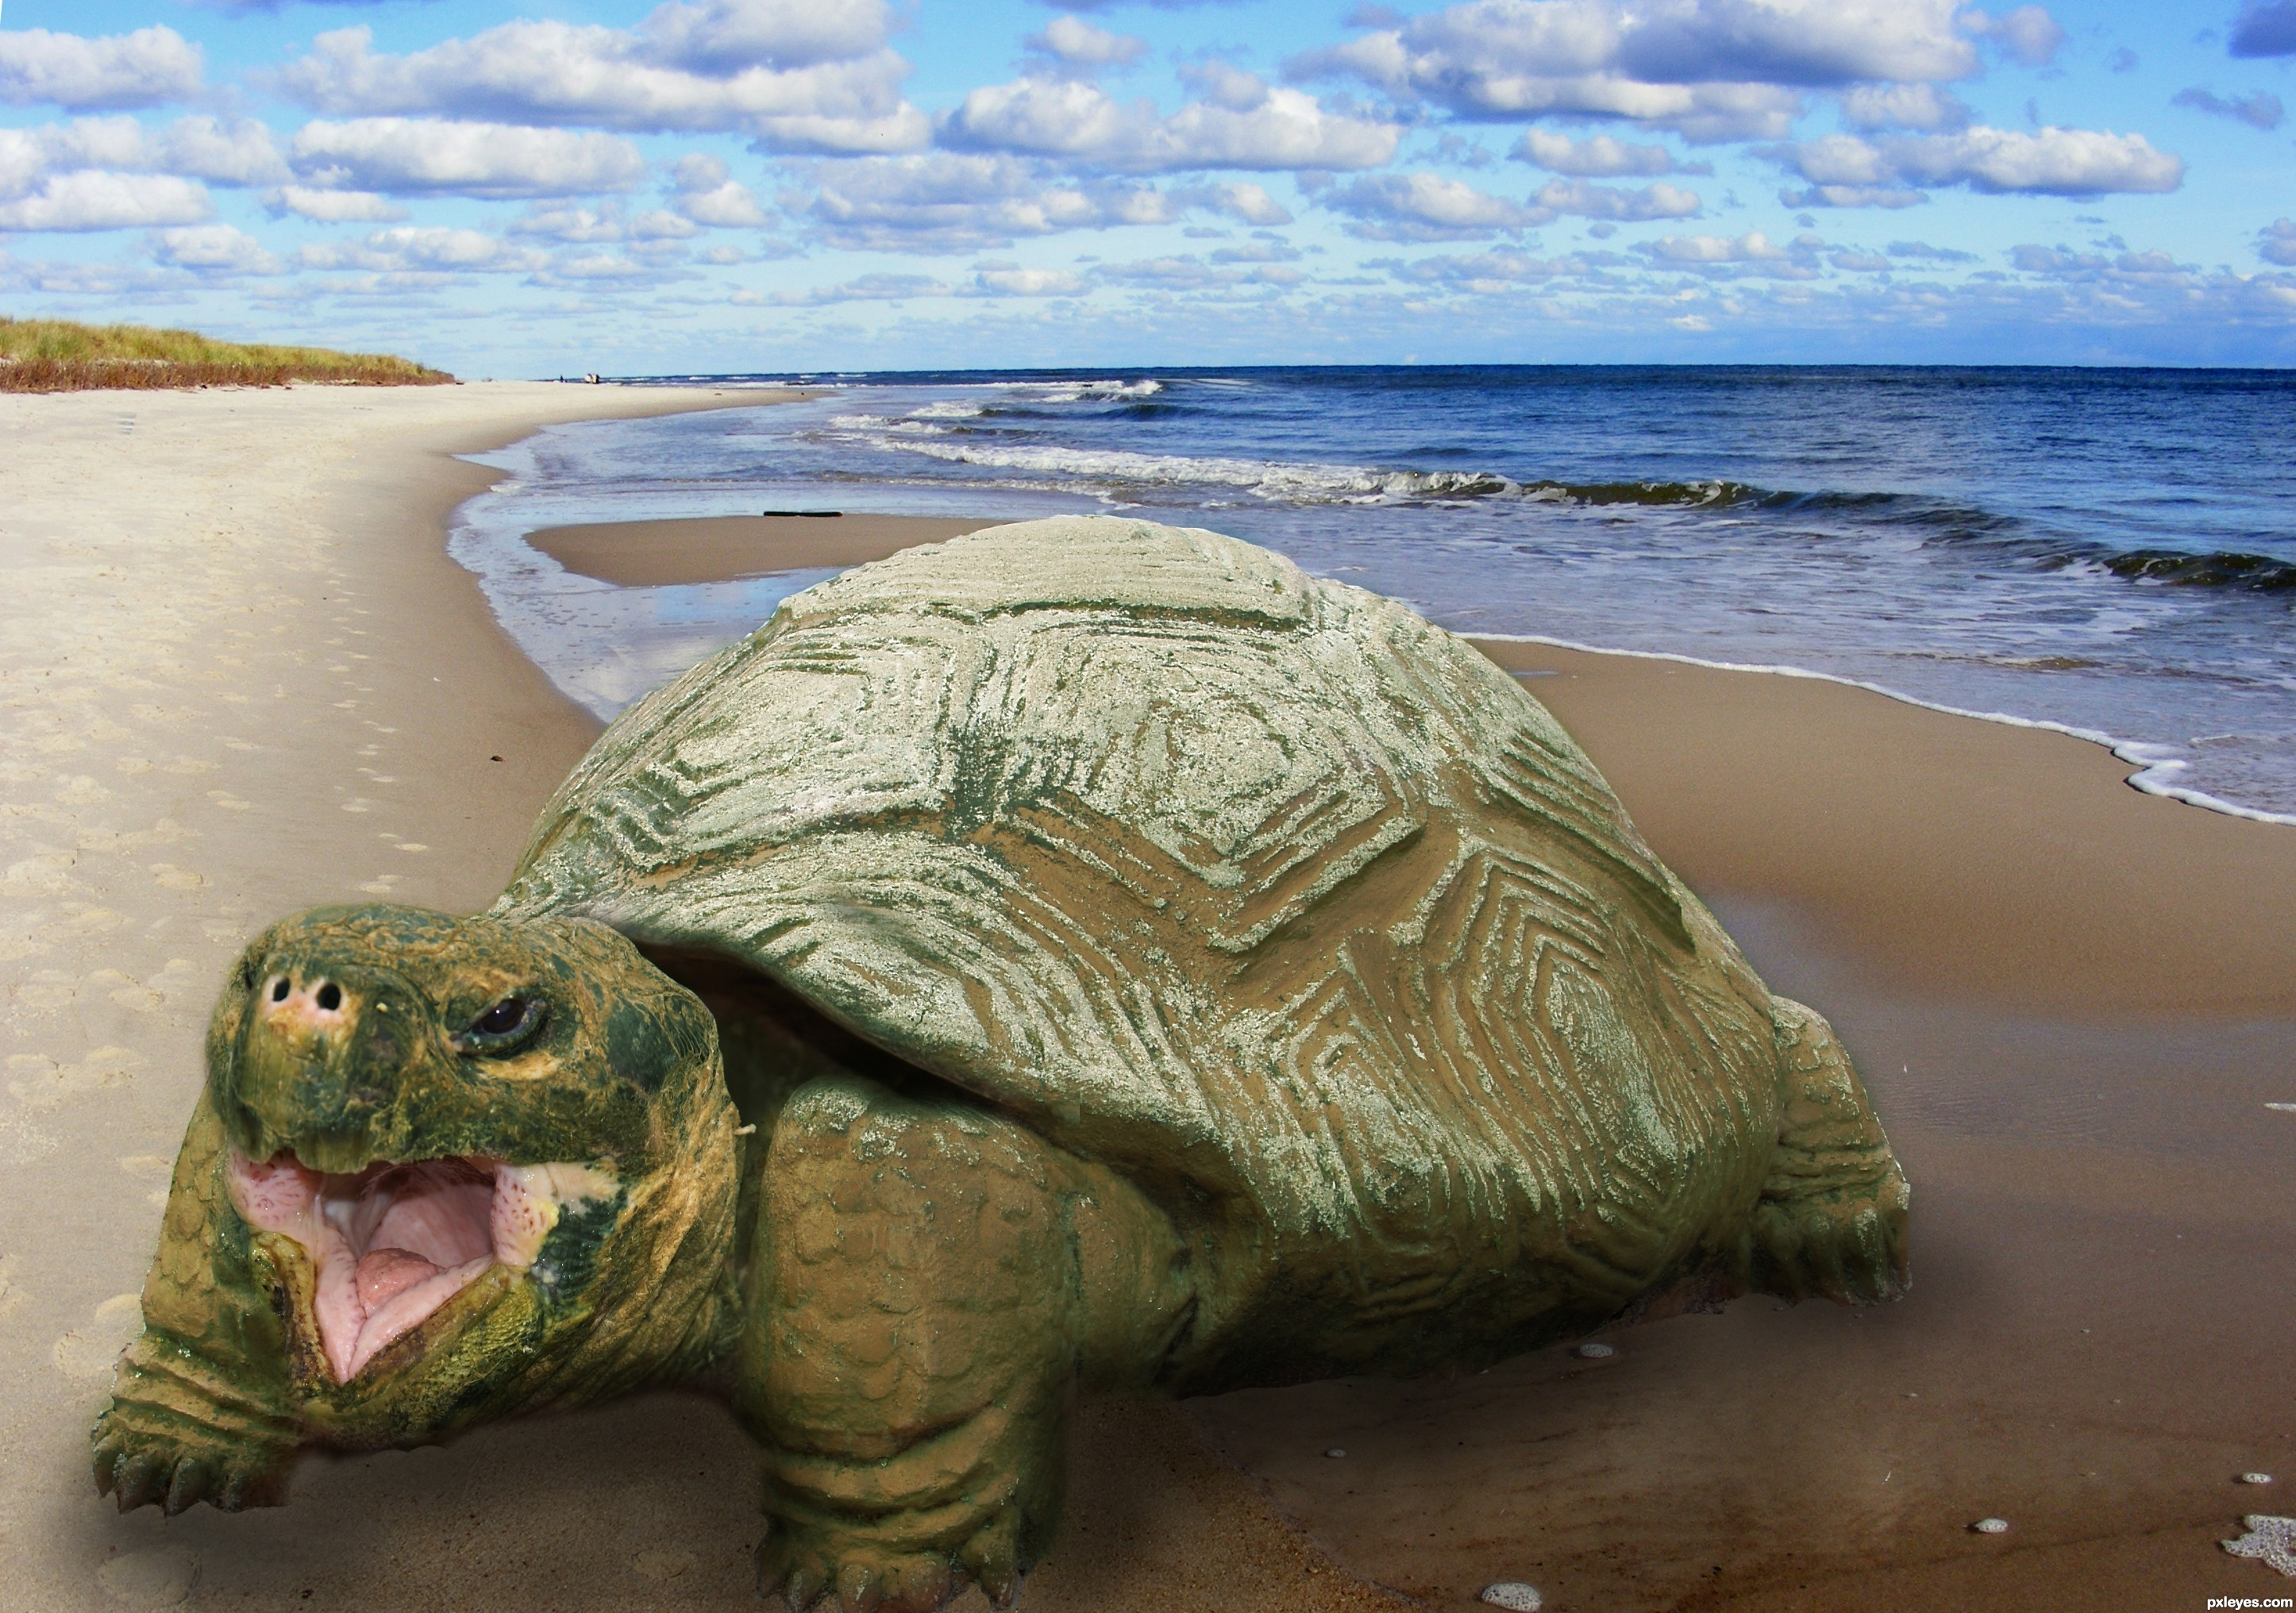 sandy turtle picture, by photoshopmum for: stone turtle photoshop ...